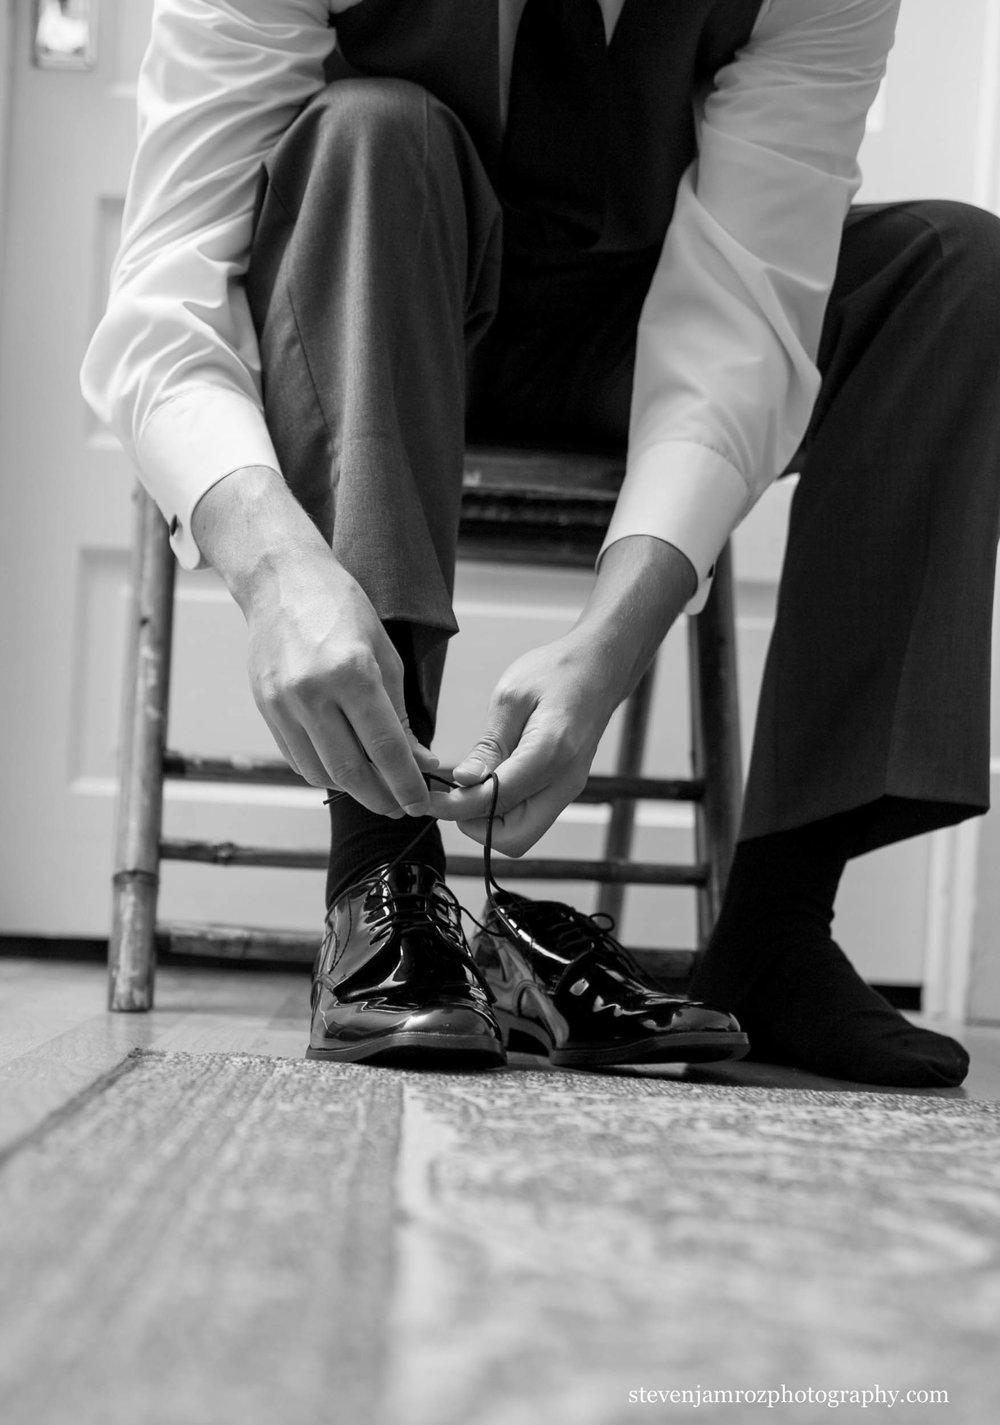 shoes-groom-get-ready-wedding-steven-jamroz-photography-0075.jpg